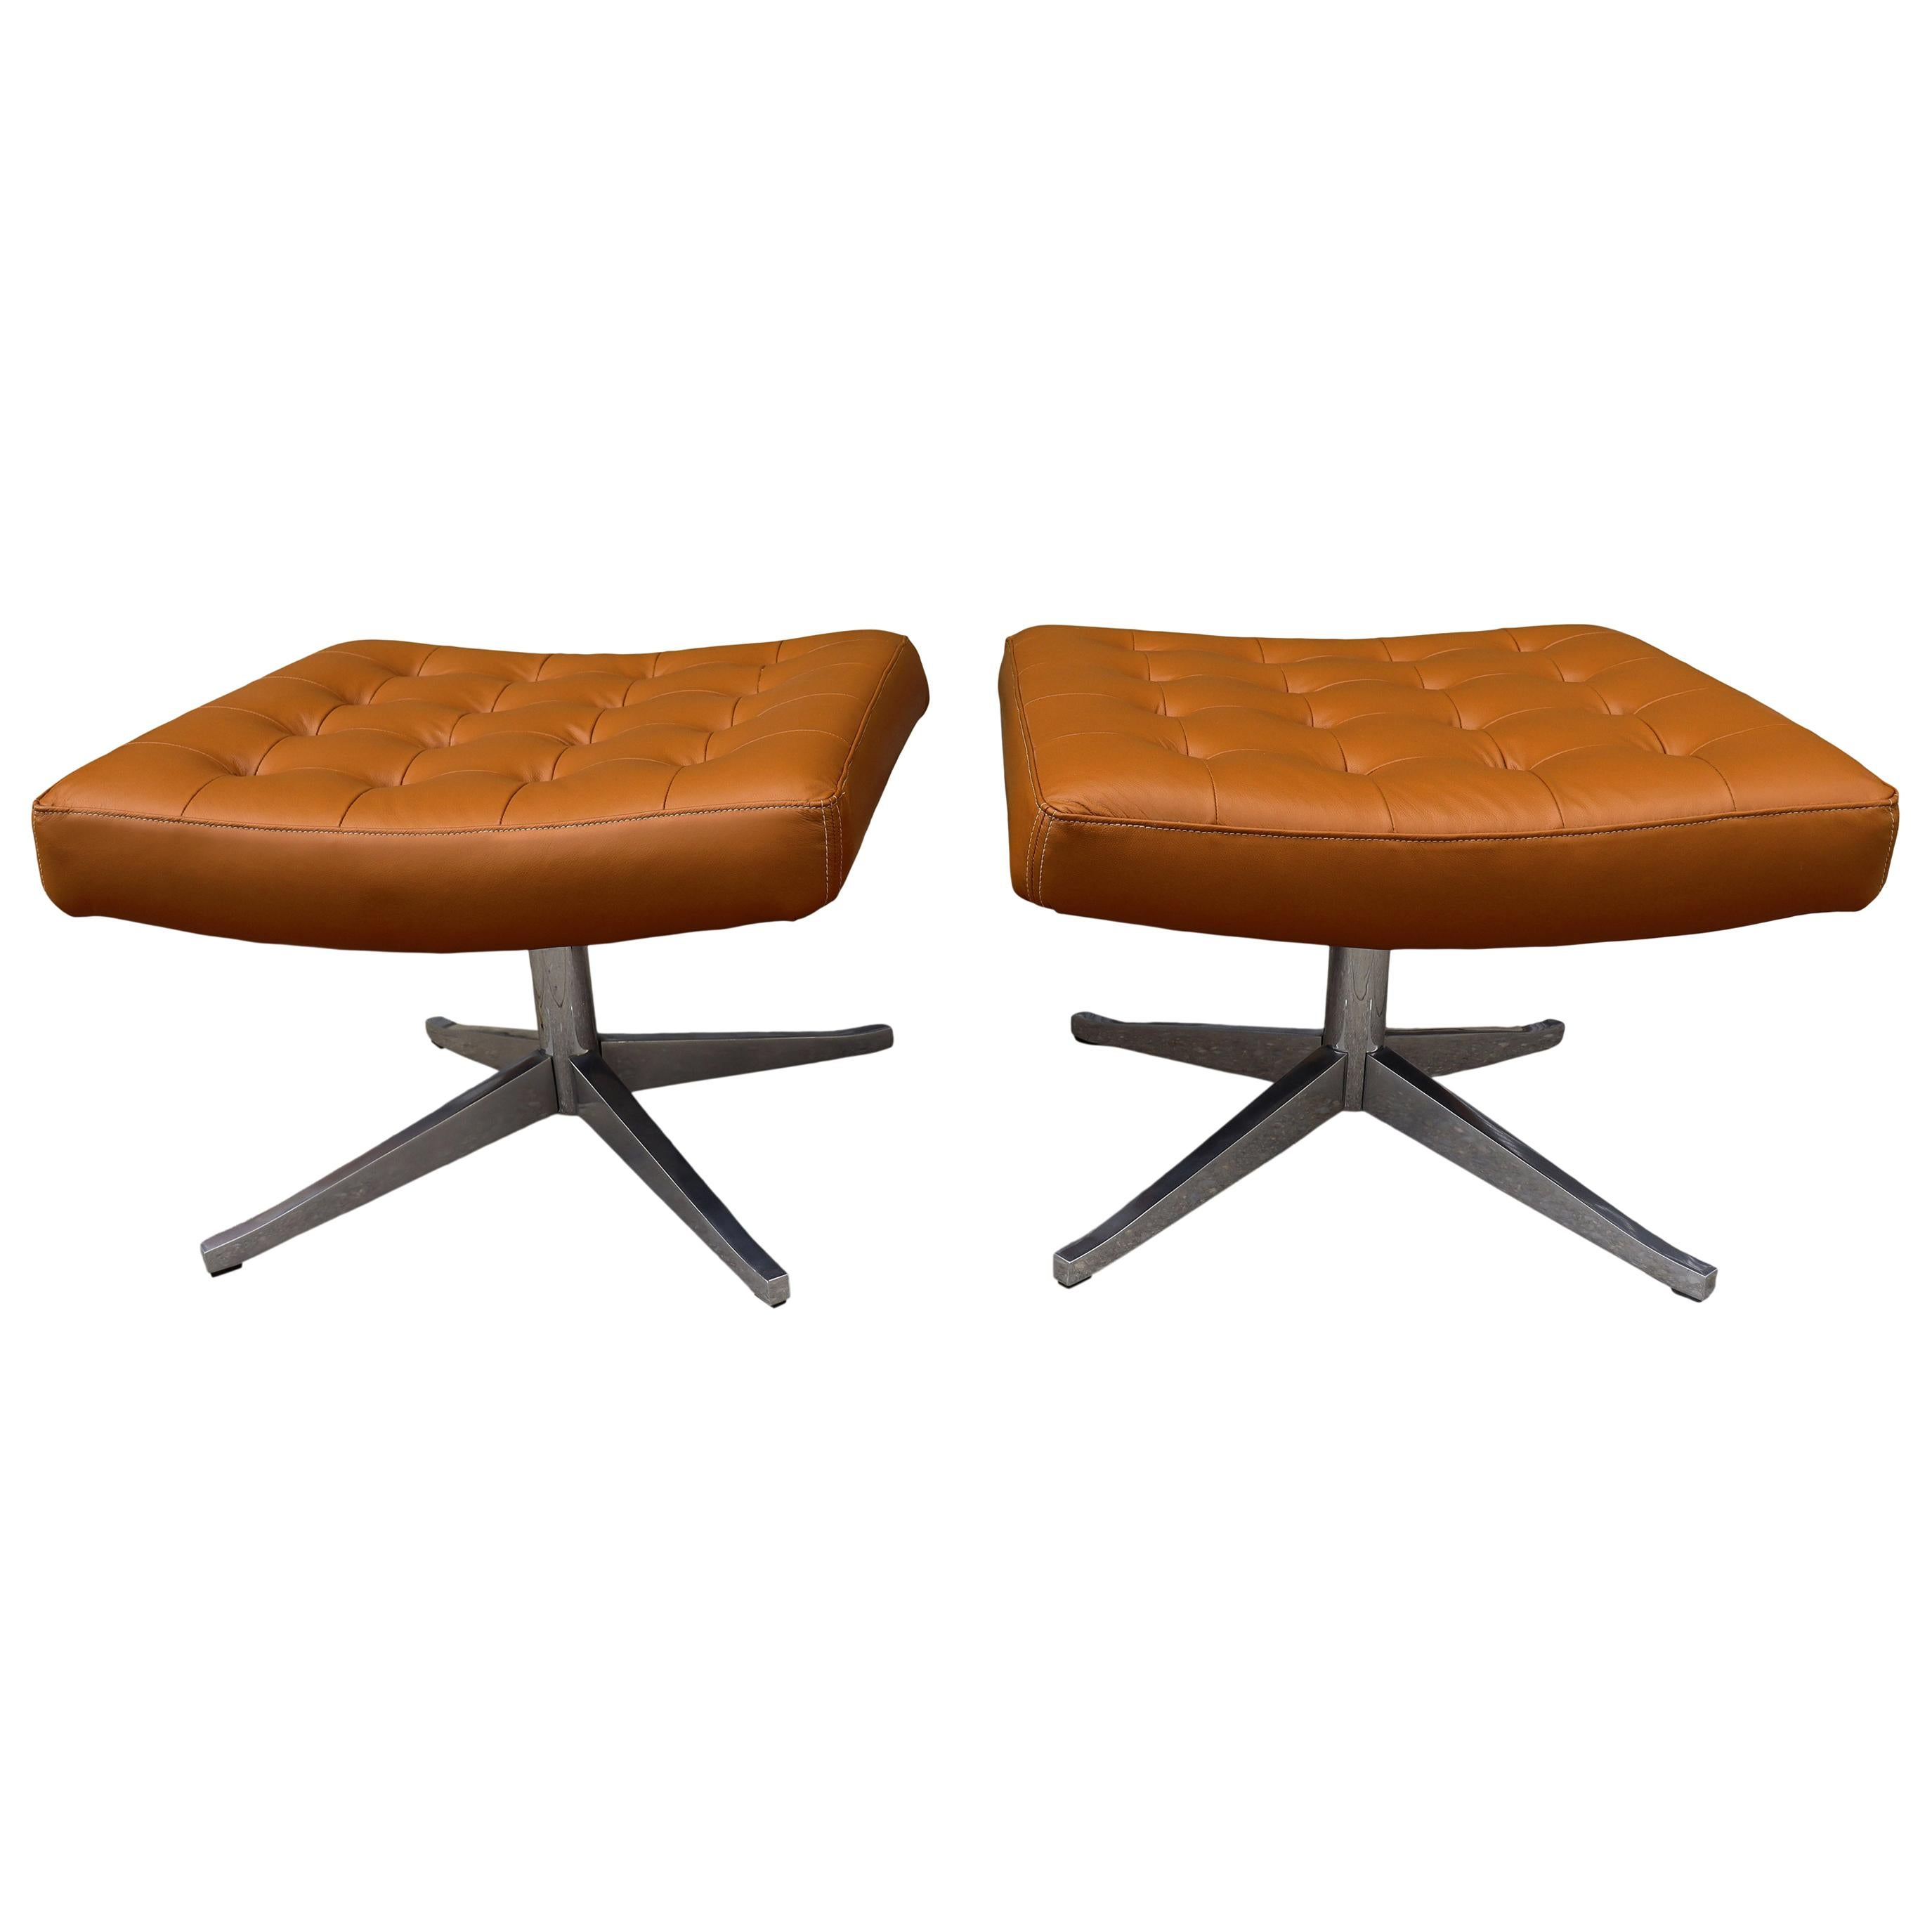 Rare Midcentury Ottoman or Stool for Knoll